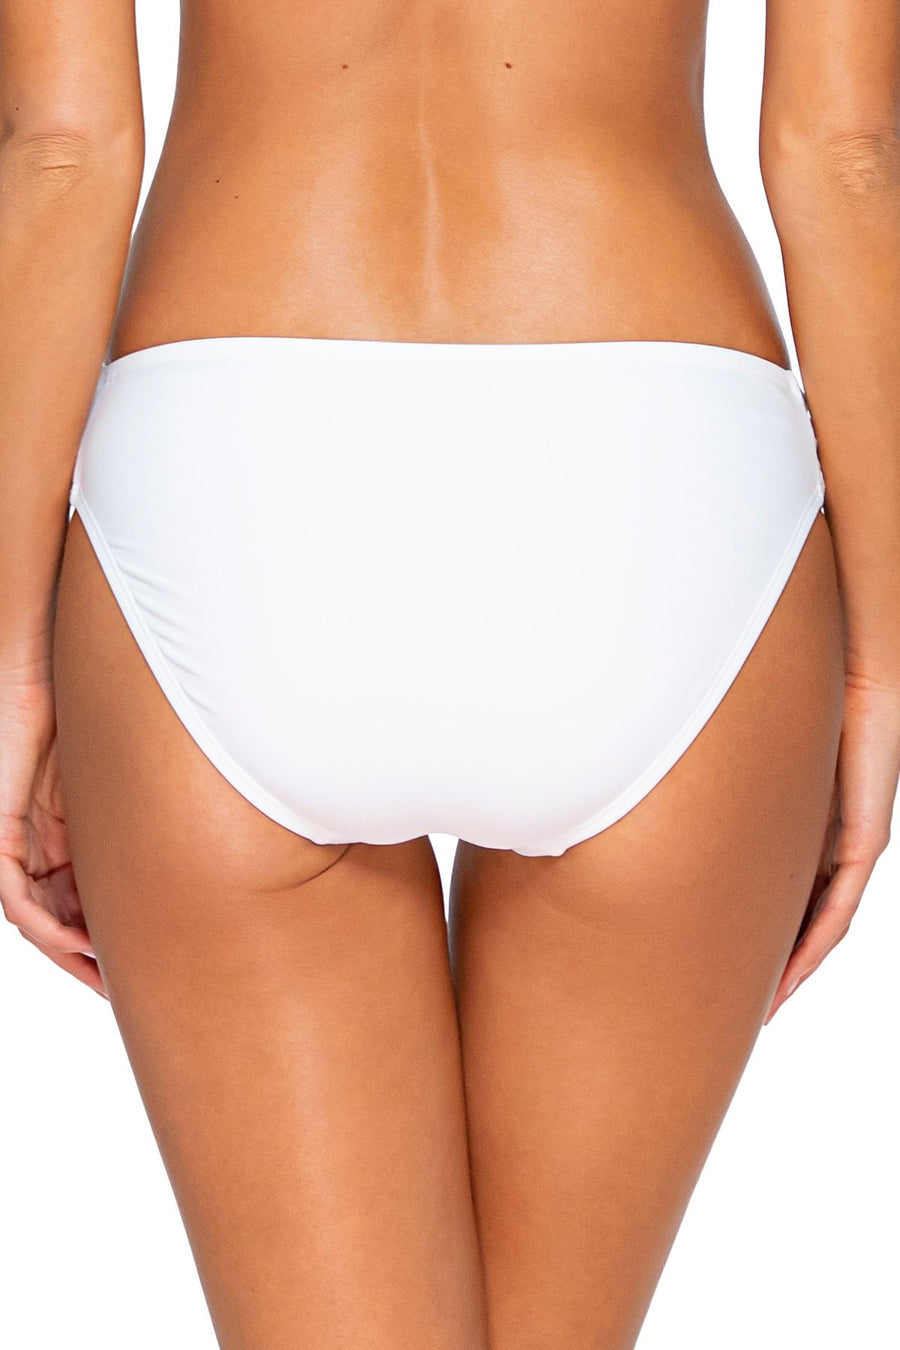 Sunsets White Femme Fatale Hipster Bottom - Key West Swimwear